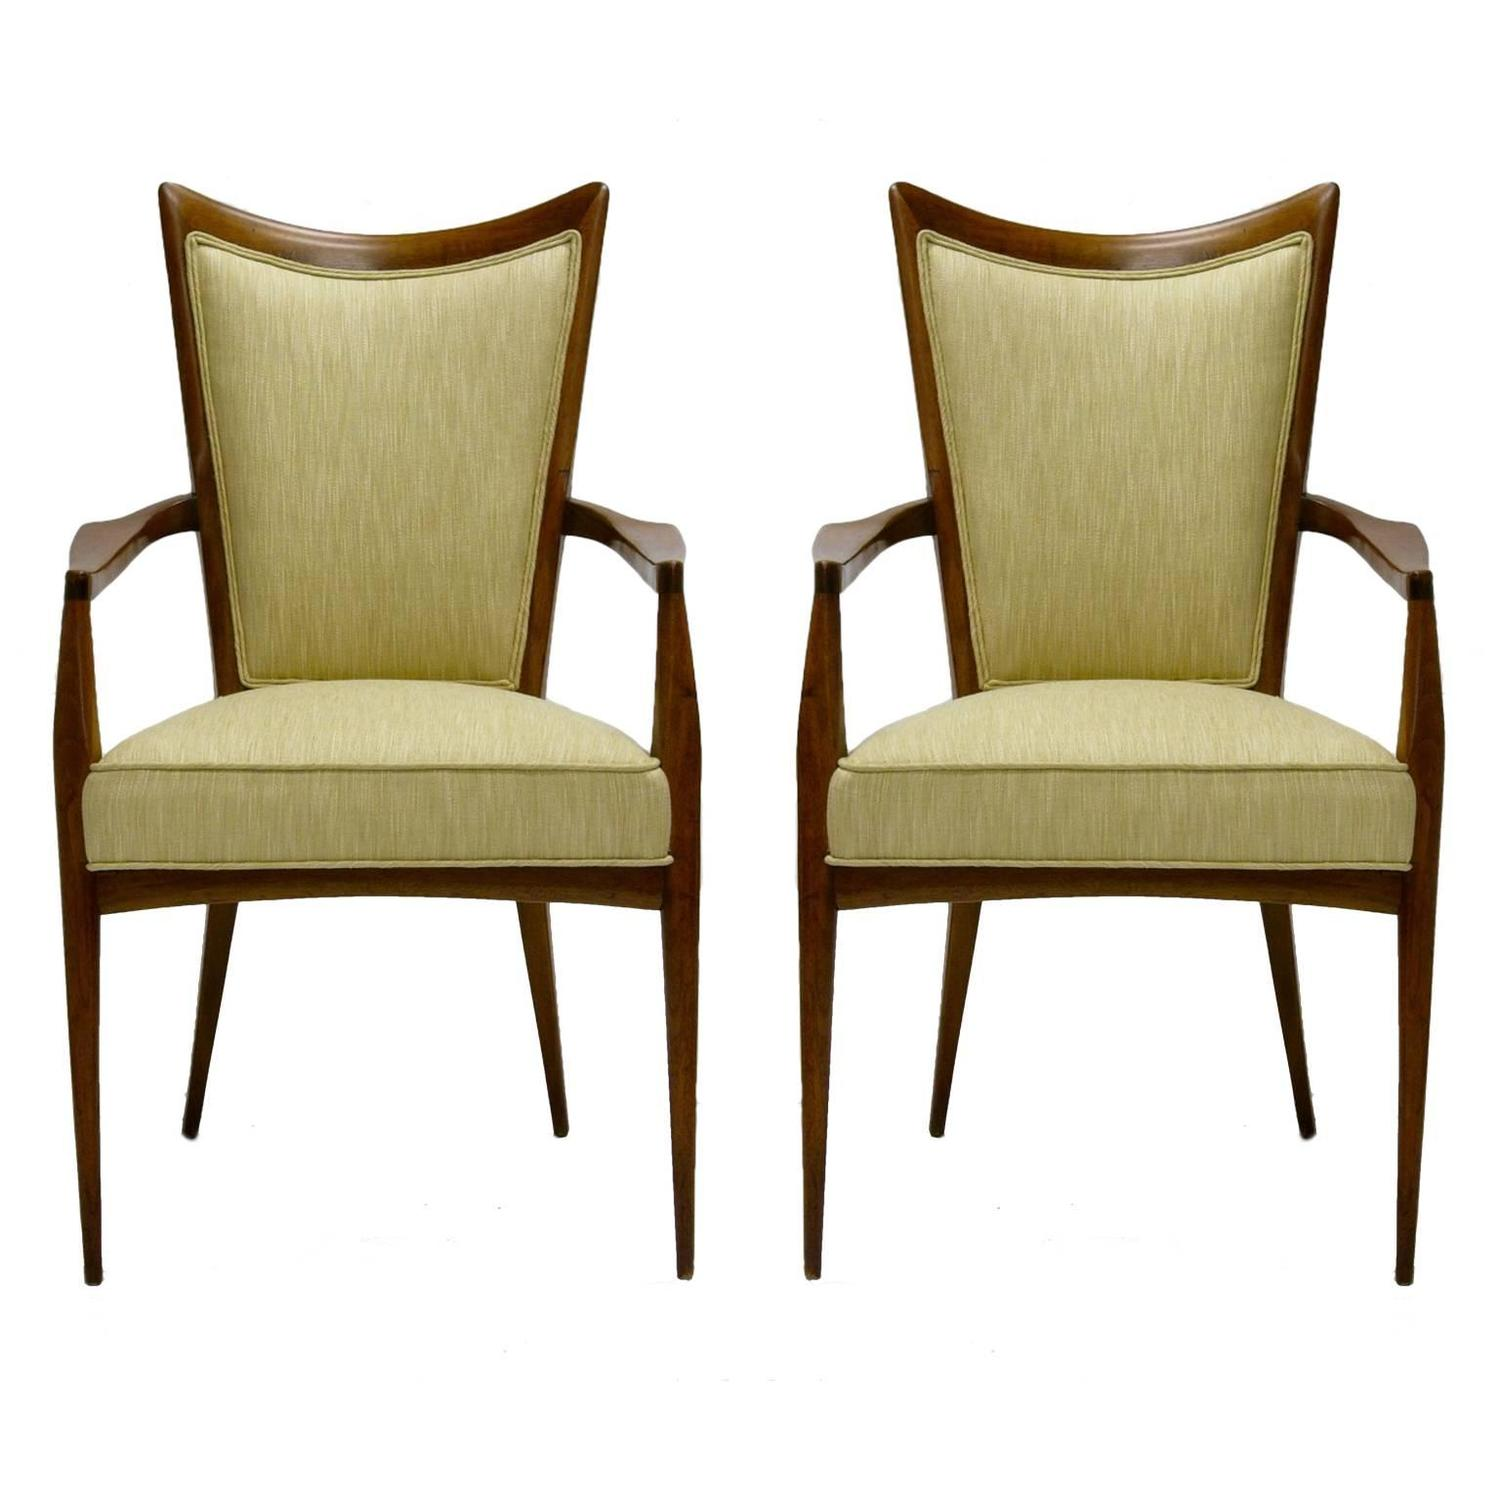 Stunning Pair Of Sculptural Mahogany And Silk Chairs By Melchiorre Bega For Sale At 1stdibs